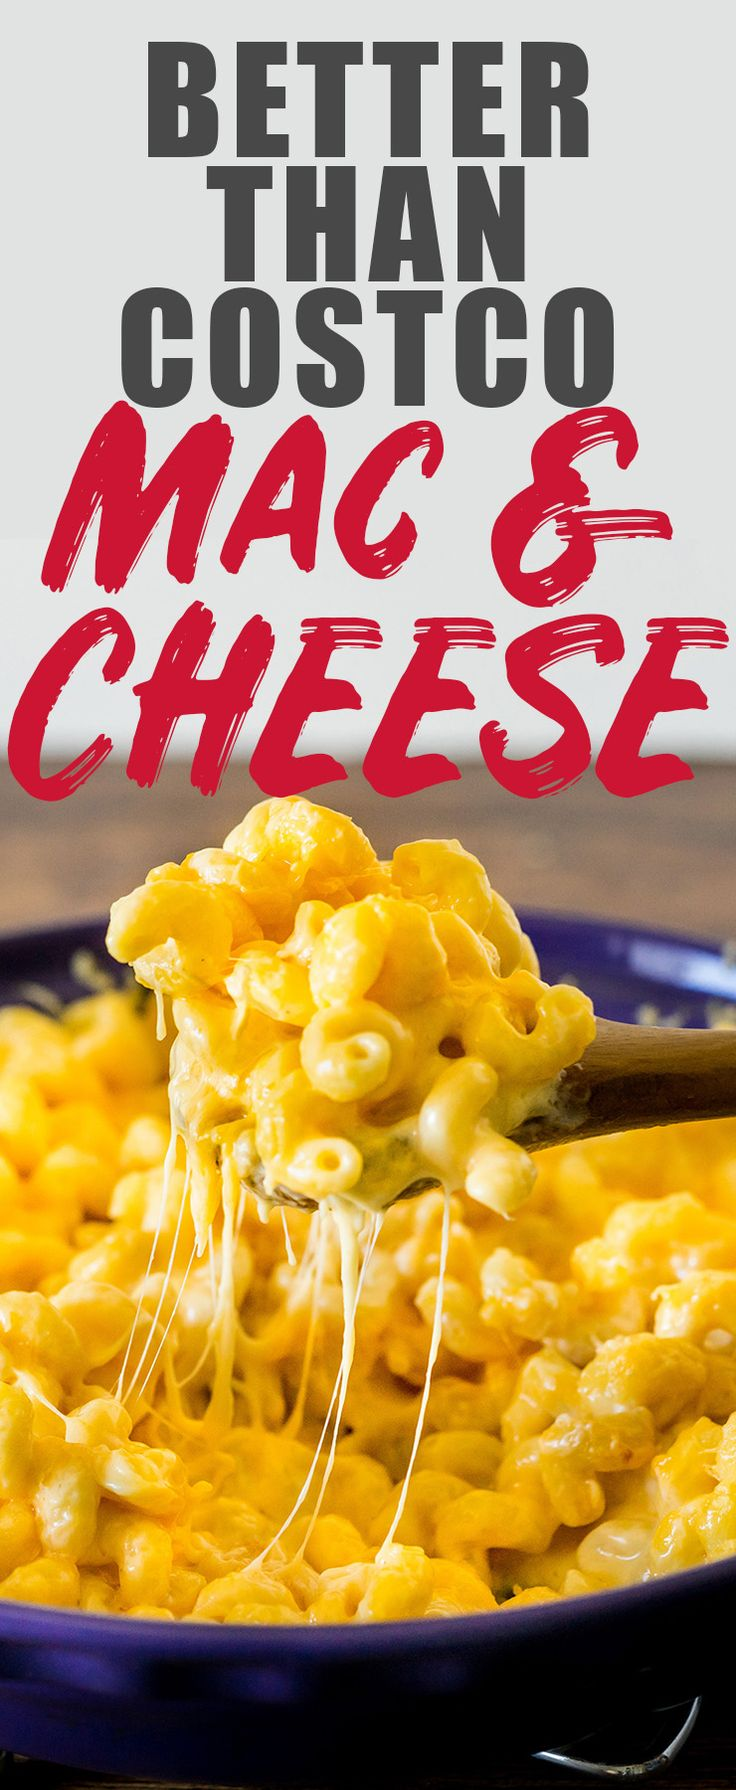 Creamy, cheesy, and super easy, this homemade mac and cheese recipe will make your Costco Mac and Cheese loving heart happy. I have a feeling you won't need your Costco card after trying this. #macandcheese #costco #cheesy #copycat #macaroni  via @heatherlikesfood